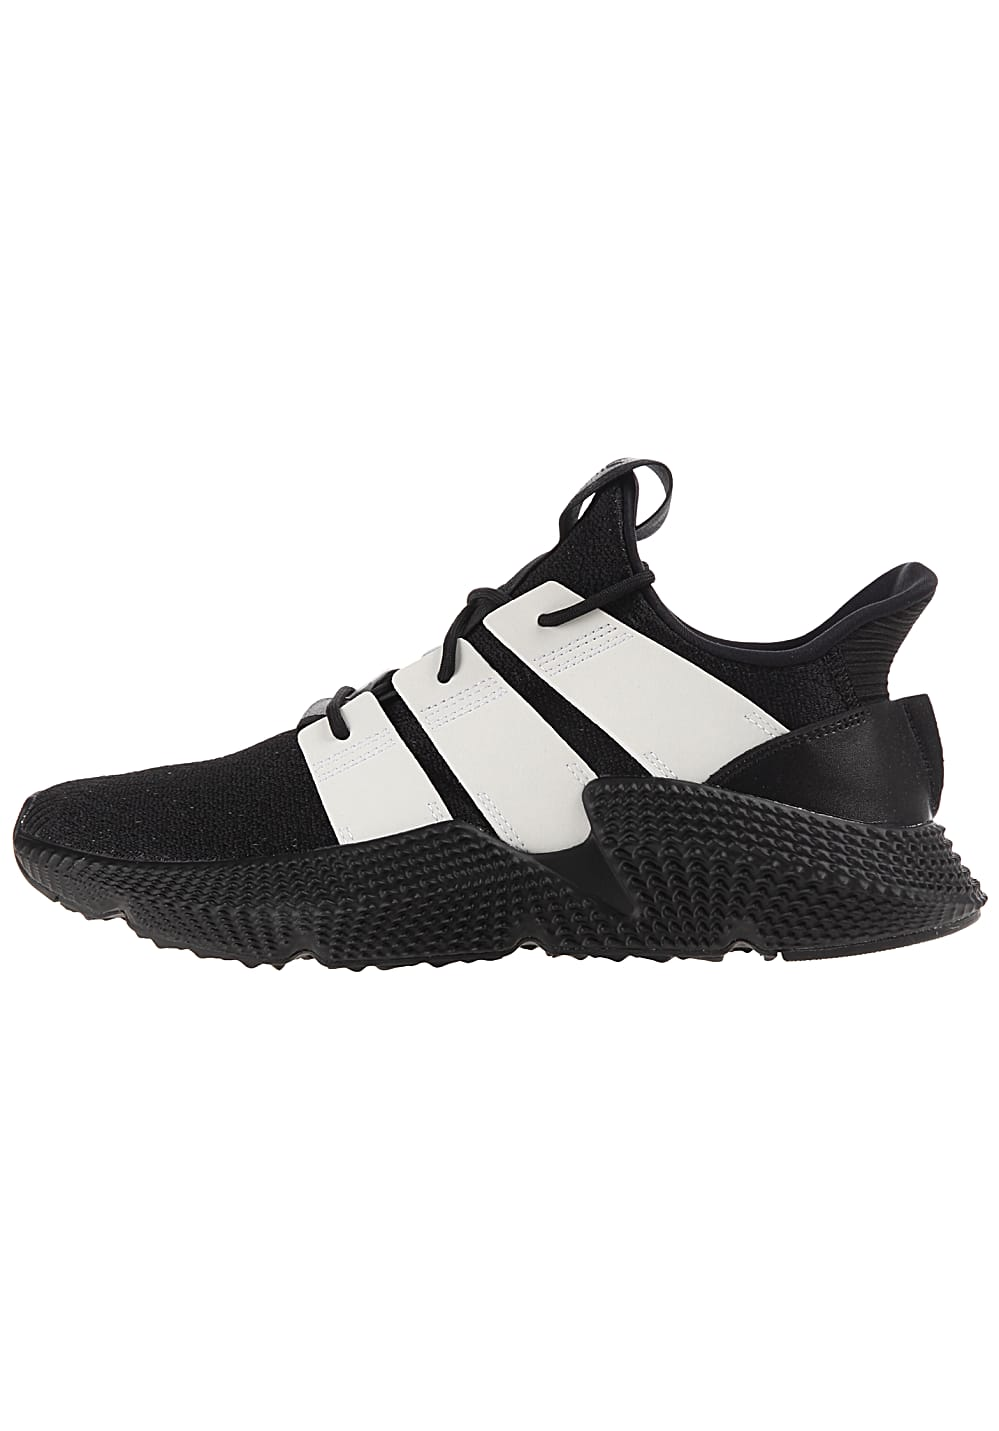 sports shoes 9bbf2 25505 Next. -10%. ADIDAS ORIGINALS. Prophere - Sneakers for Men